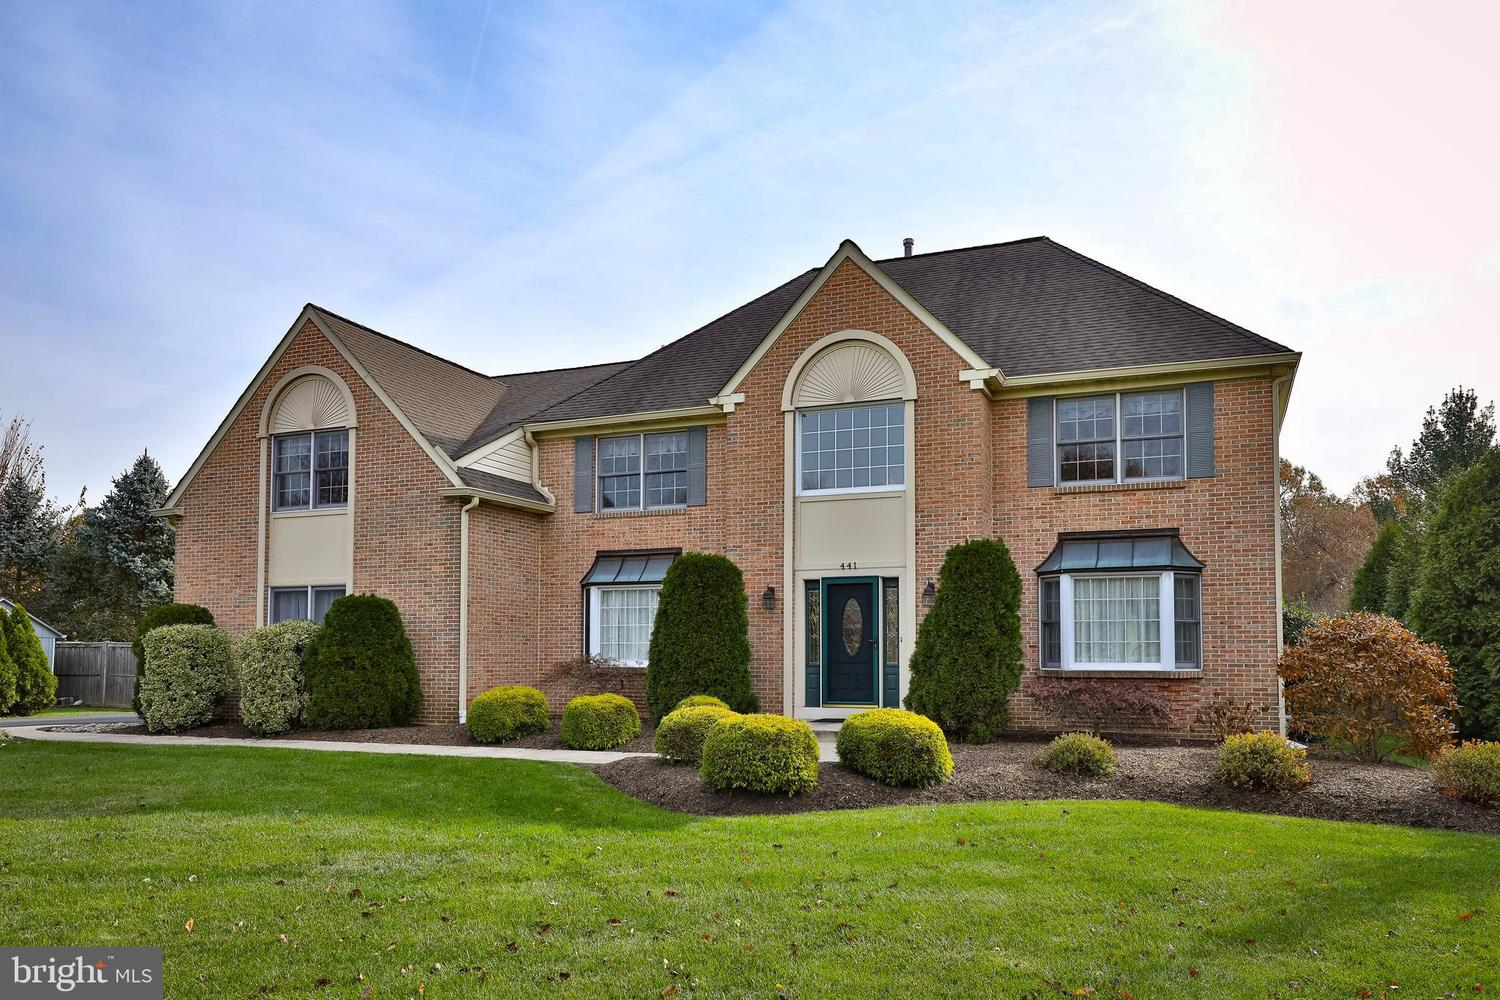 441 Cloverly Lane Horsham, PA 19044